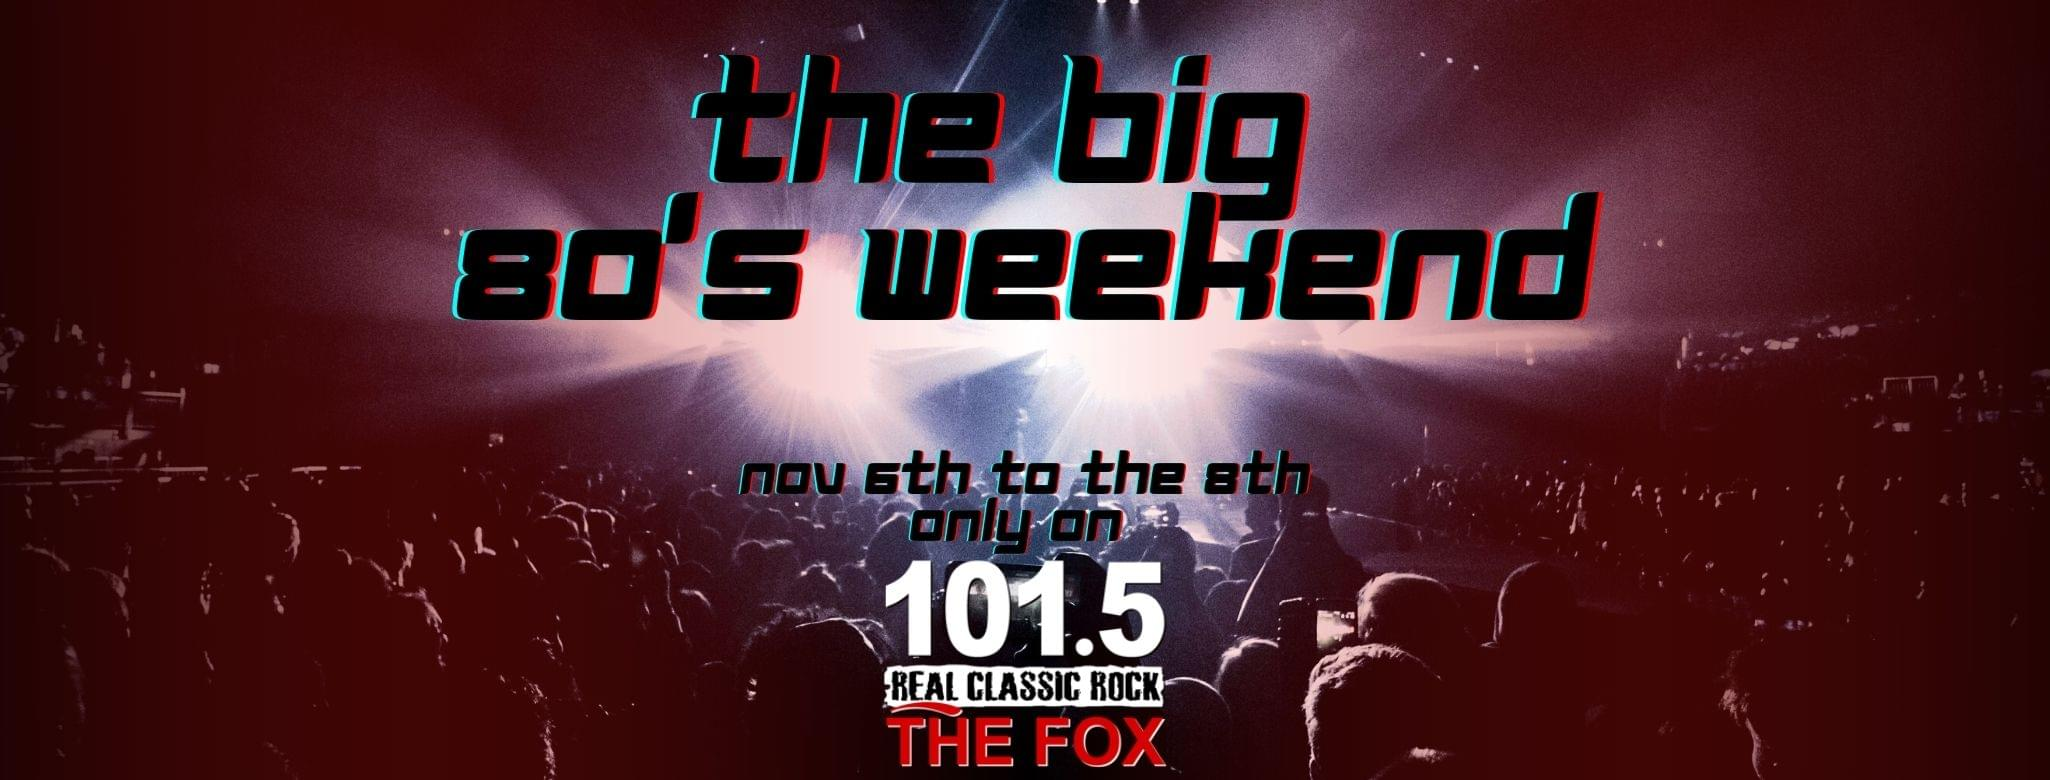 The Big 80s Weekend!